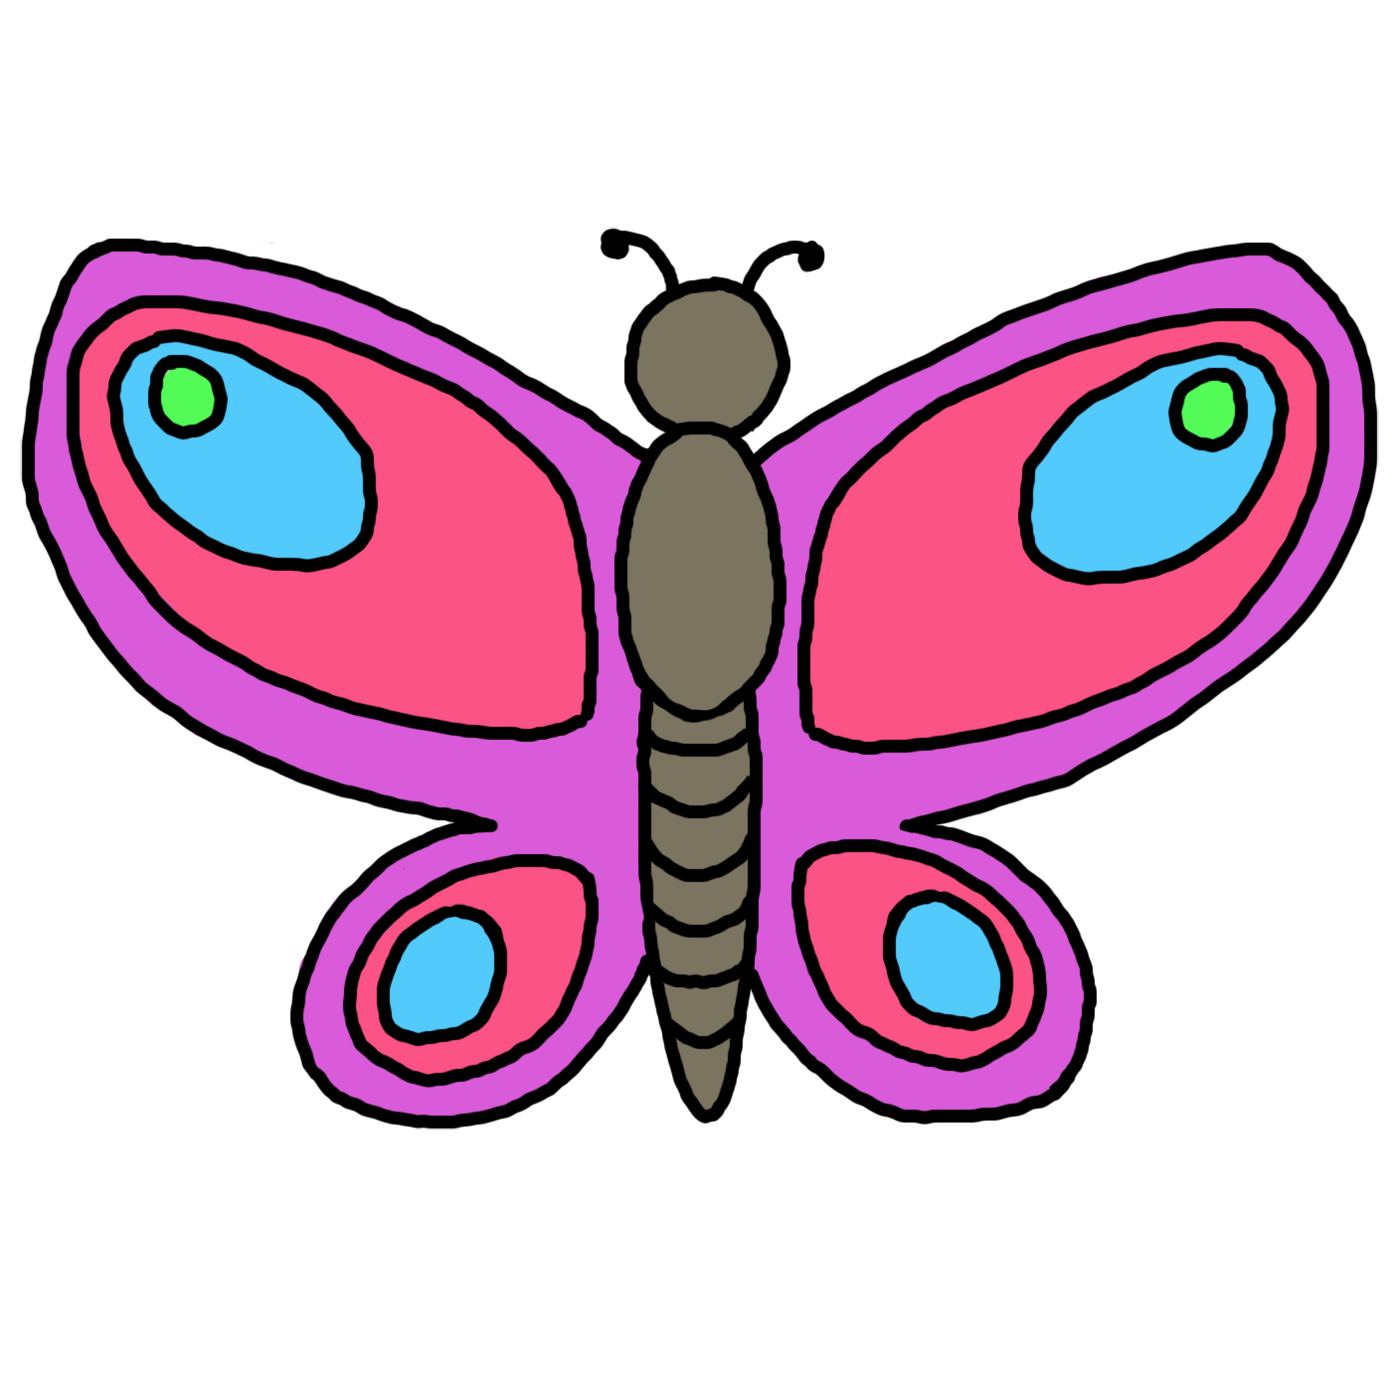 Panda free images butterflyclipart. Butterfly clipart clipart stock